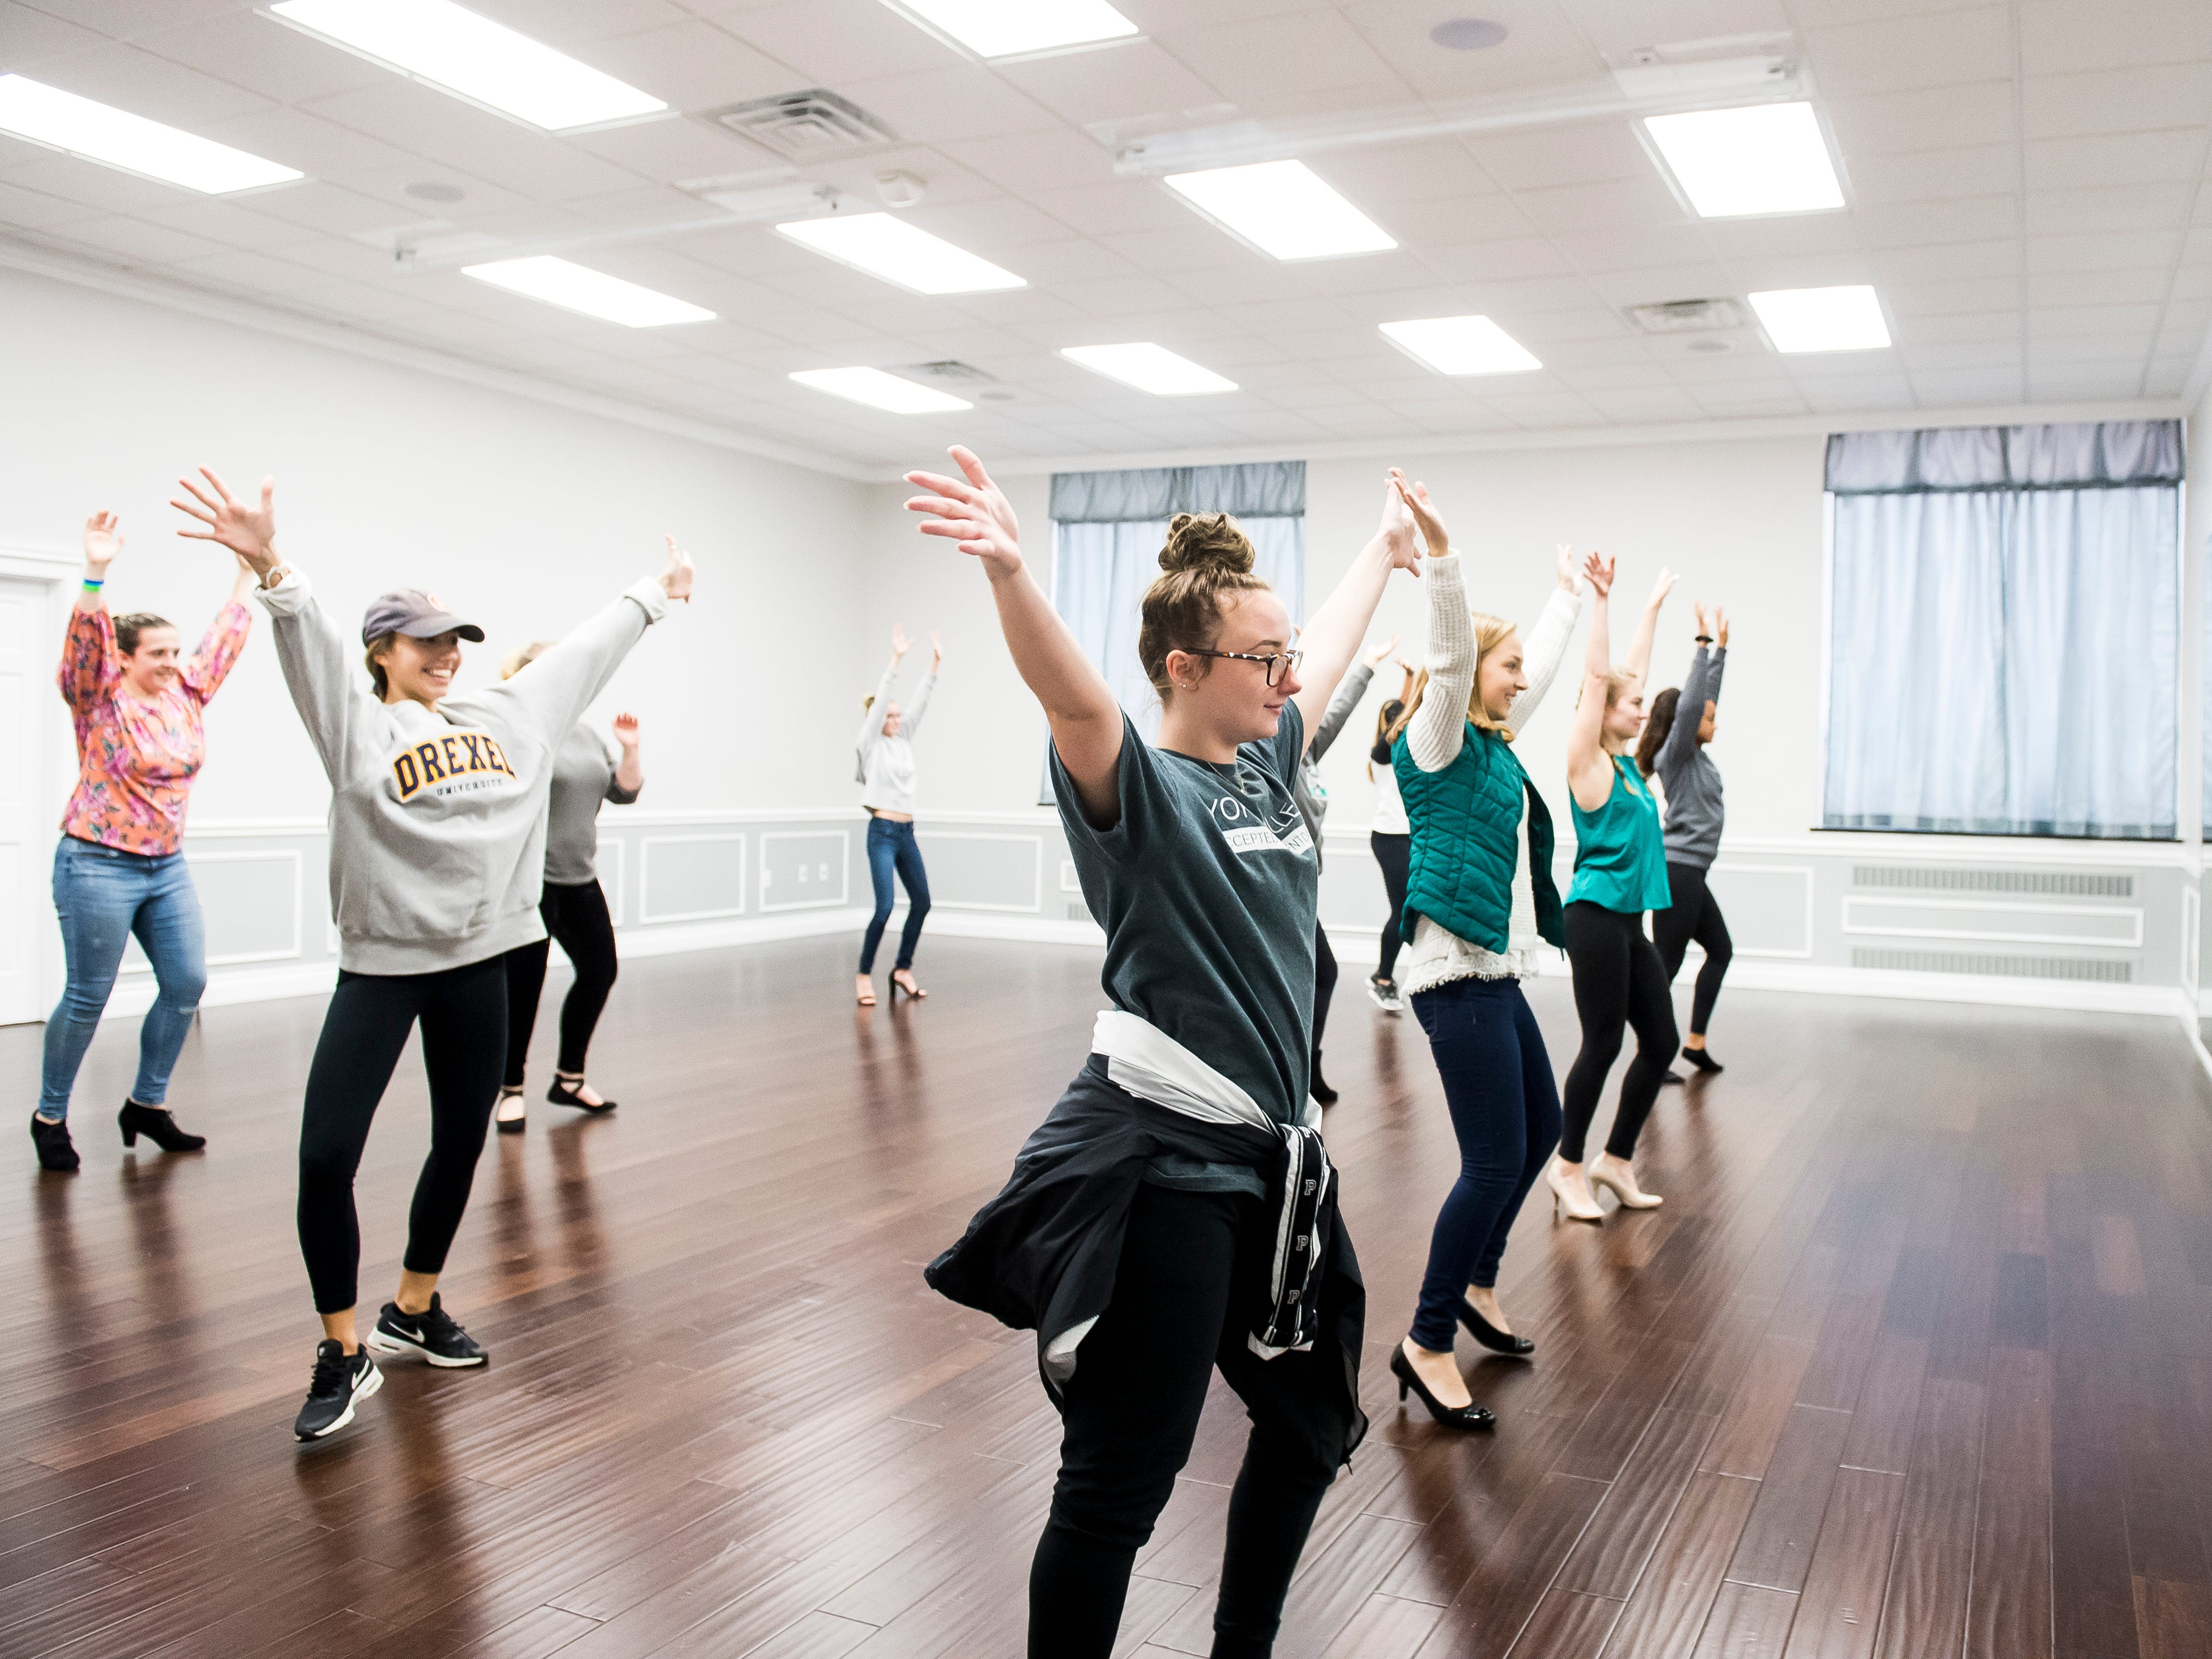 Miss Hanover Area pageant contestants practice during a dance rehearsal at PATABS in Hanover on October 14, 2018.